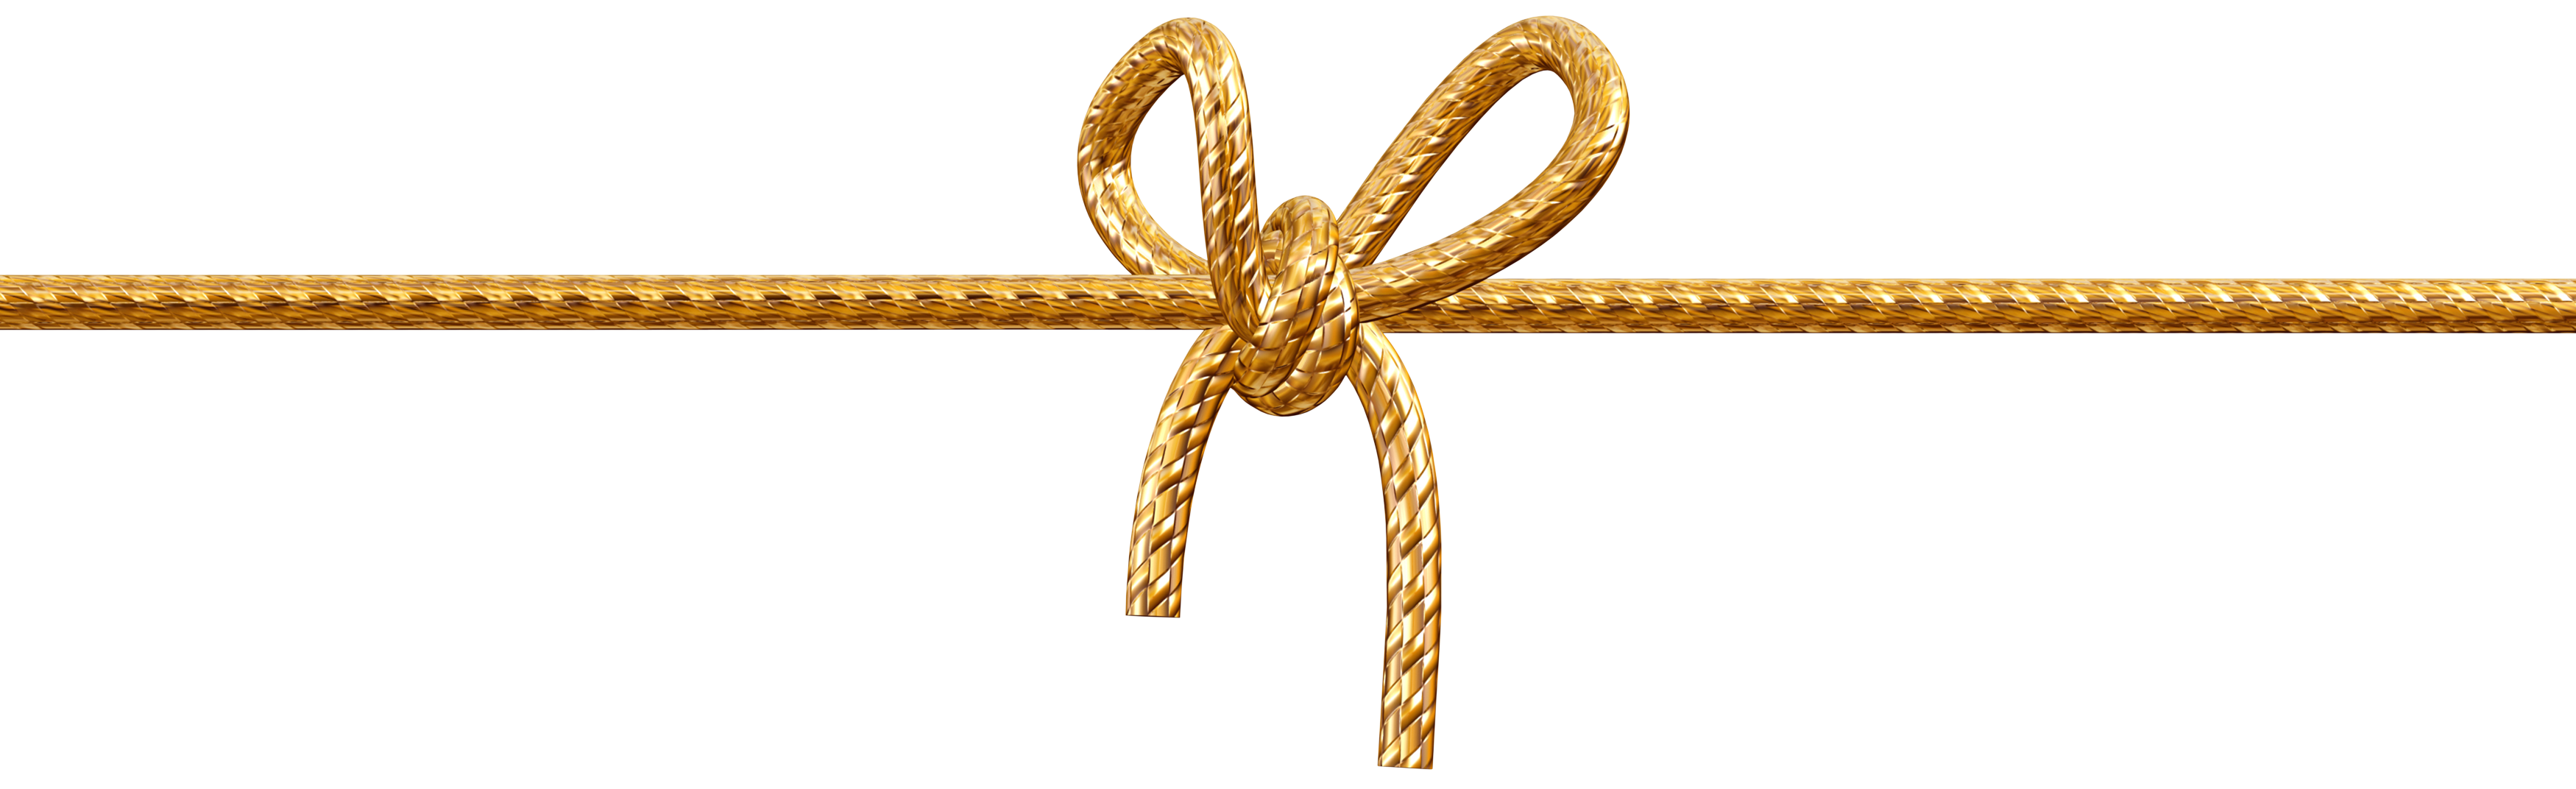 Rope Knot Computer Icons.